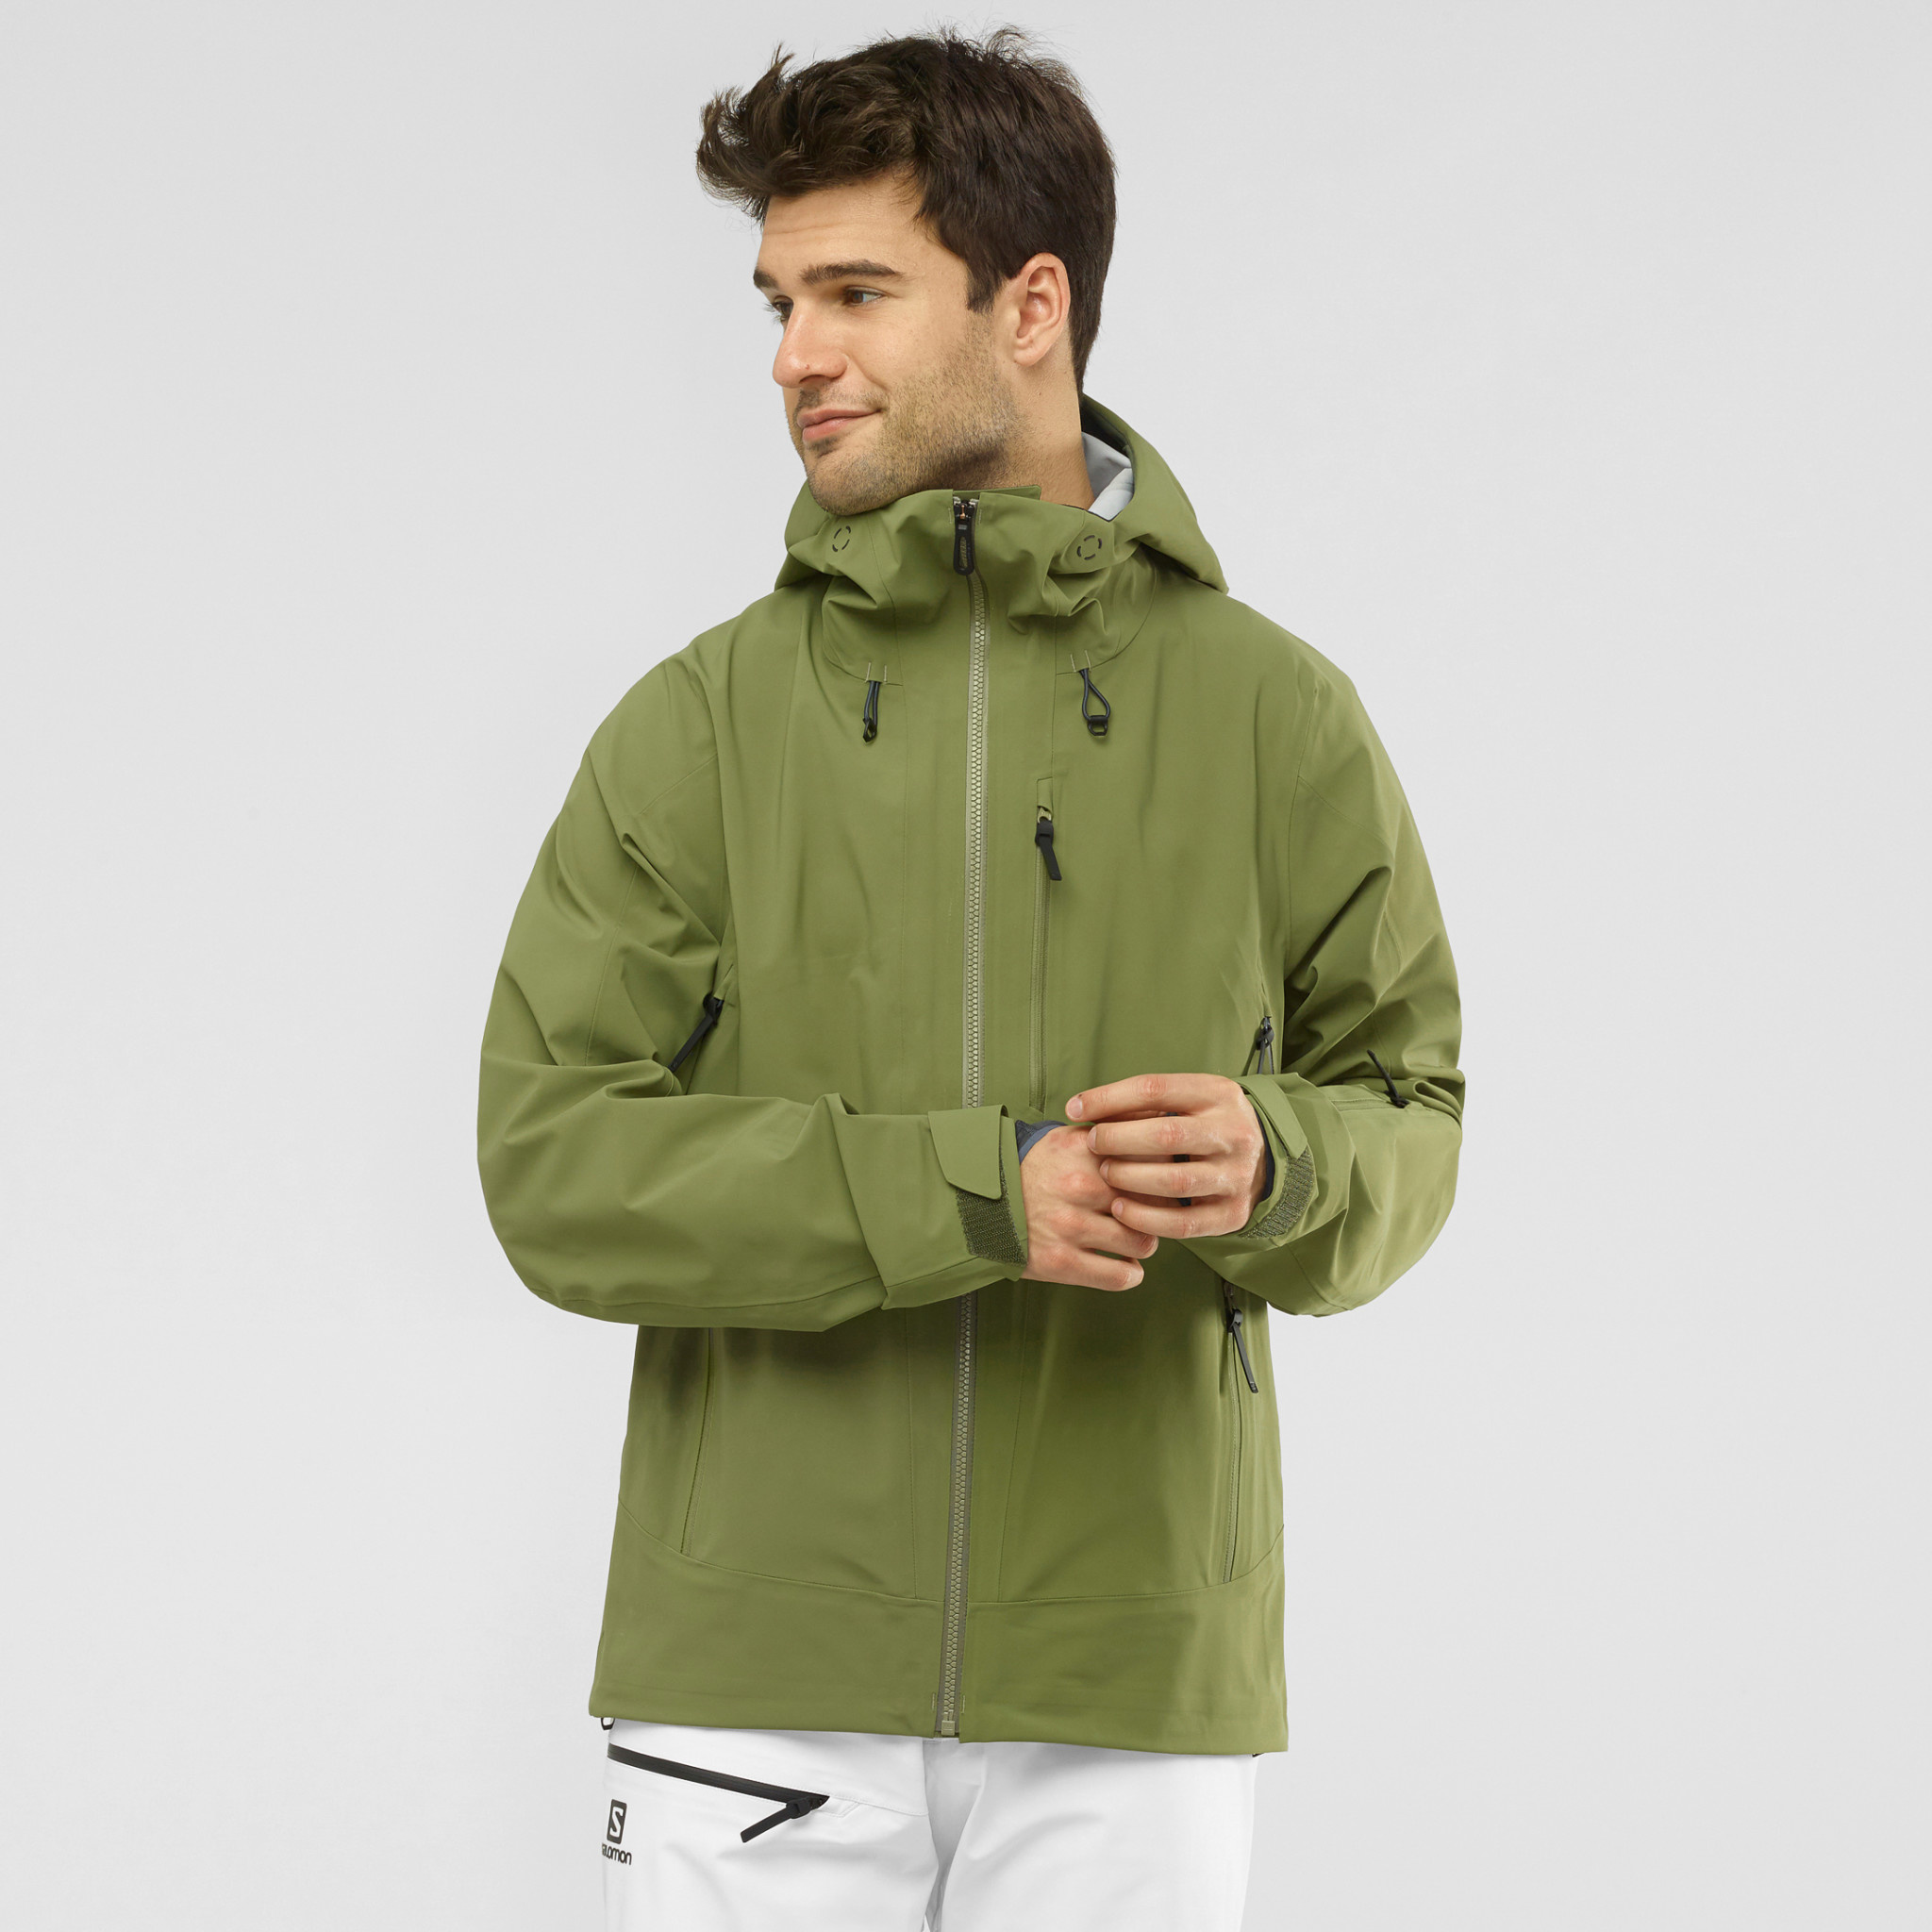 OUTLAW 3L SHELL JACKET M-1